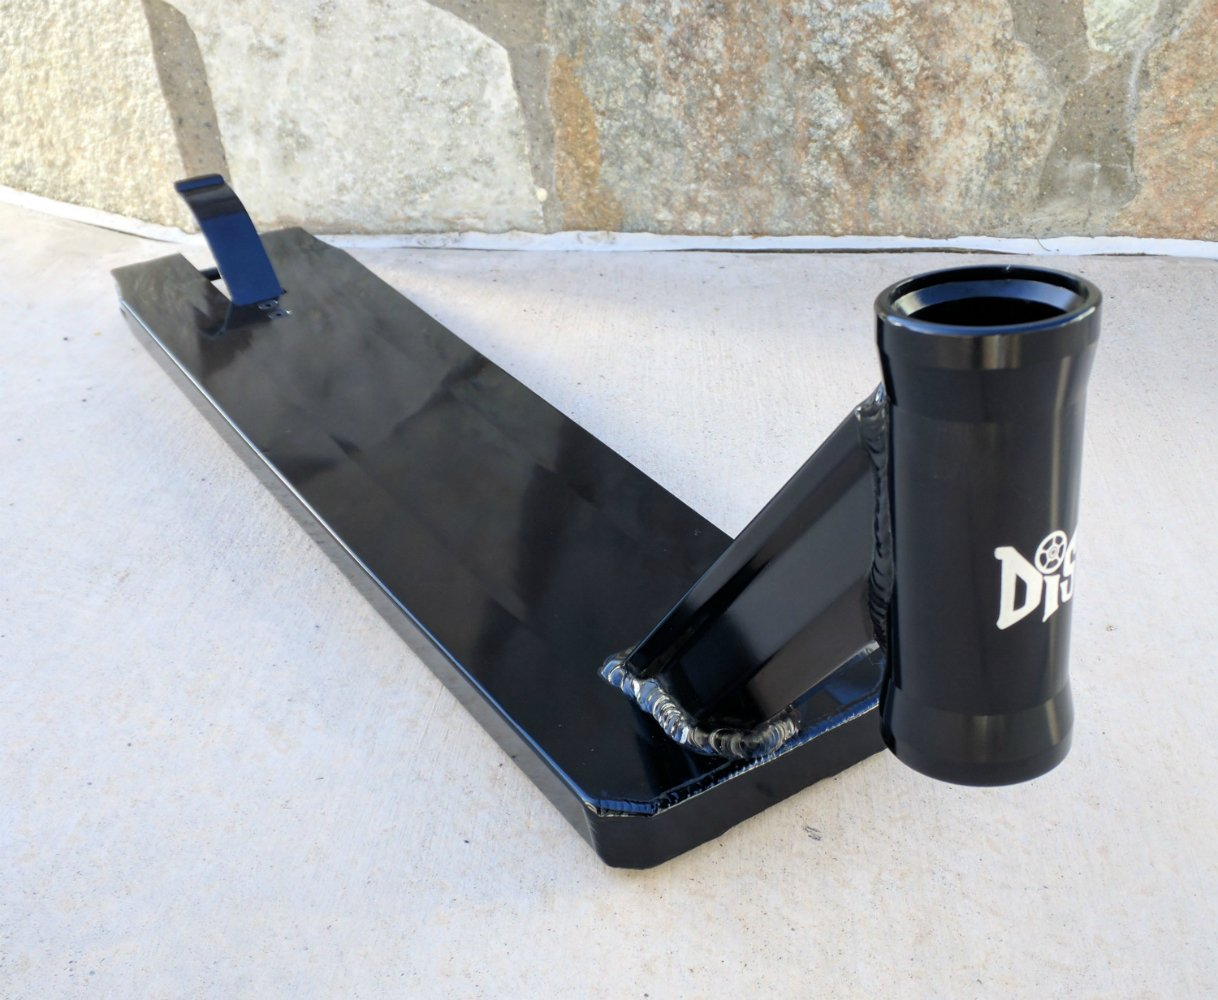 DIS Street Scooter Deck - Black 5.0 inches wide - 21.0 inches long